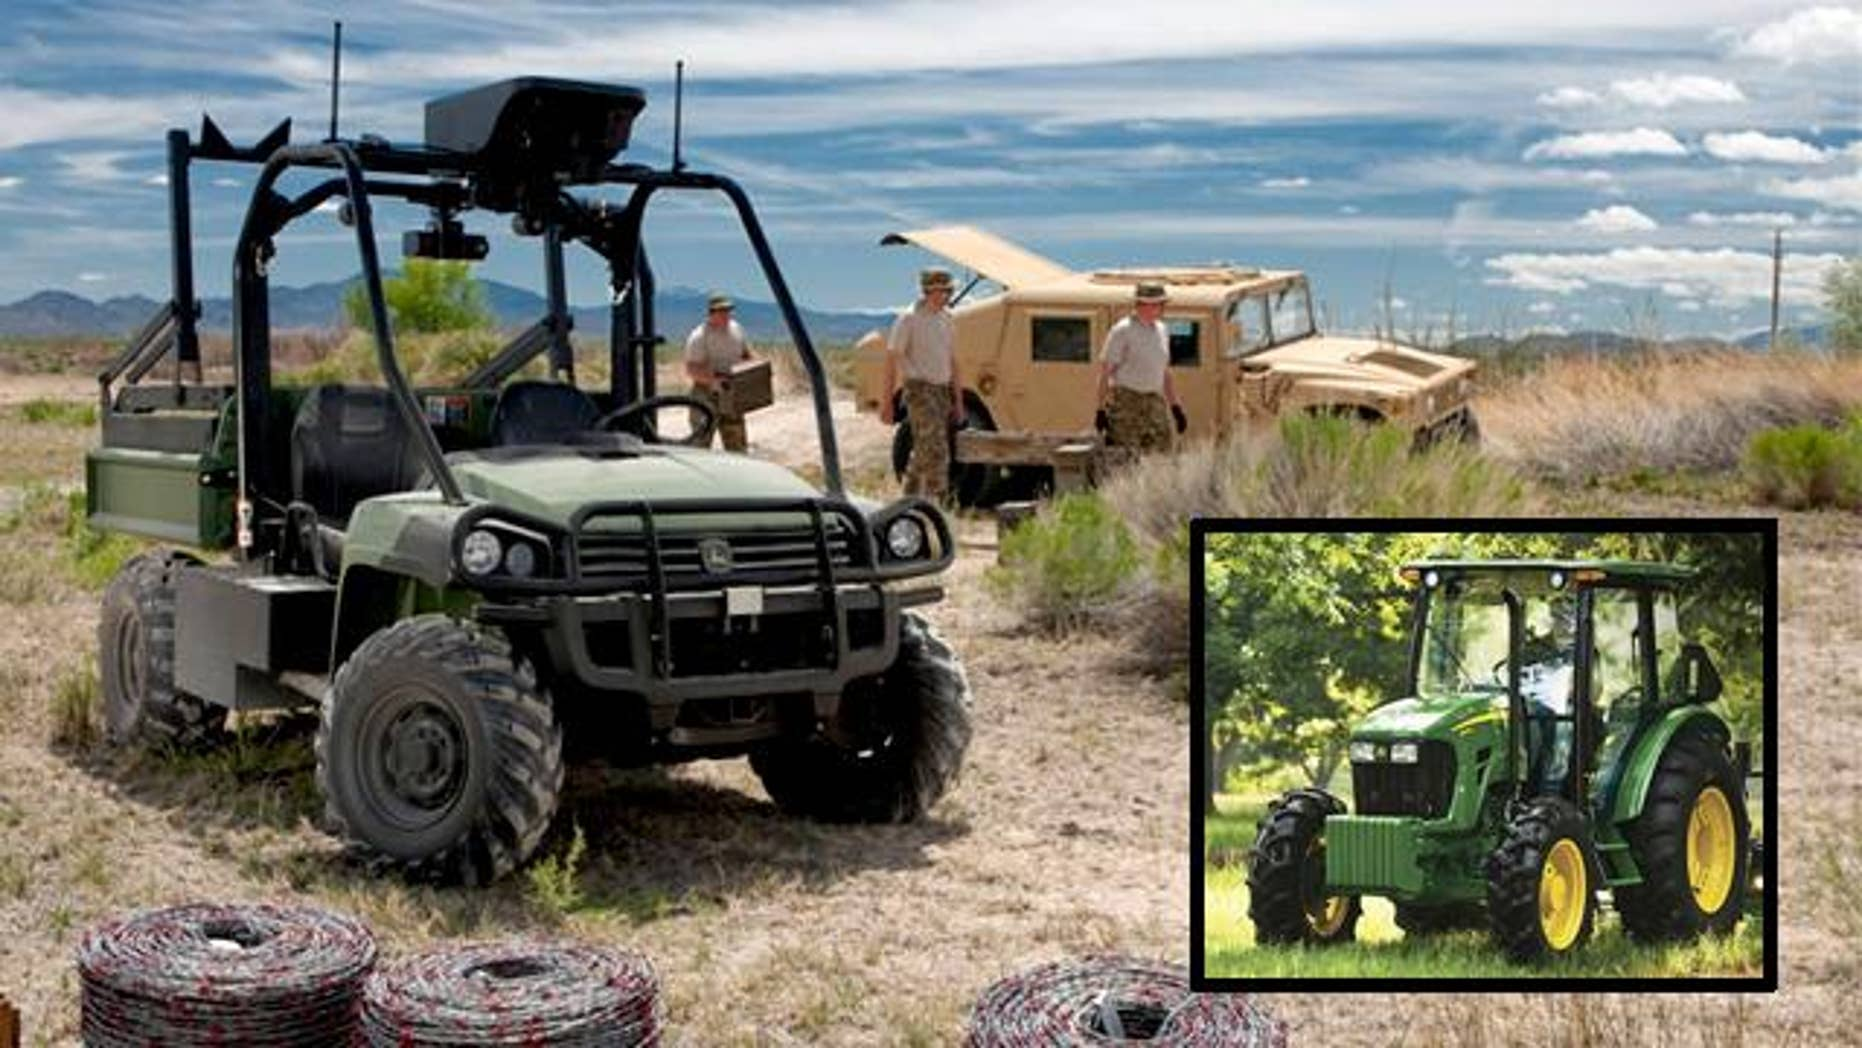 You probably know John Deere from its tractors and lawn mowers. But the storied American company also makes some killer military gear.